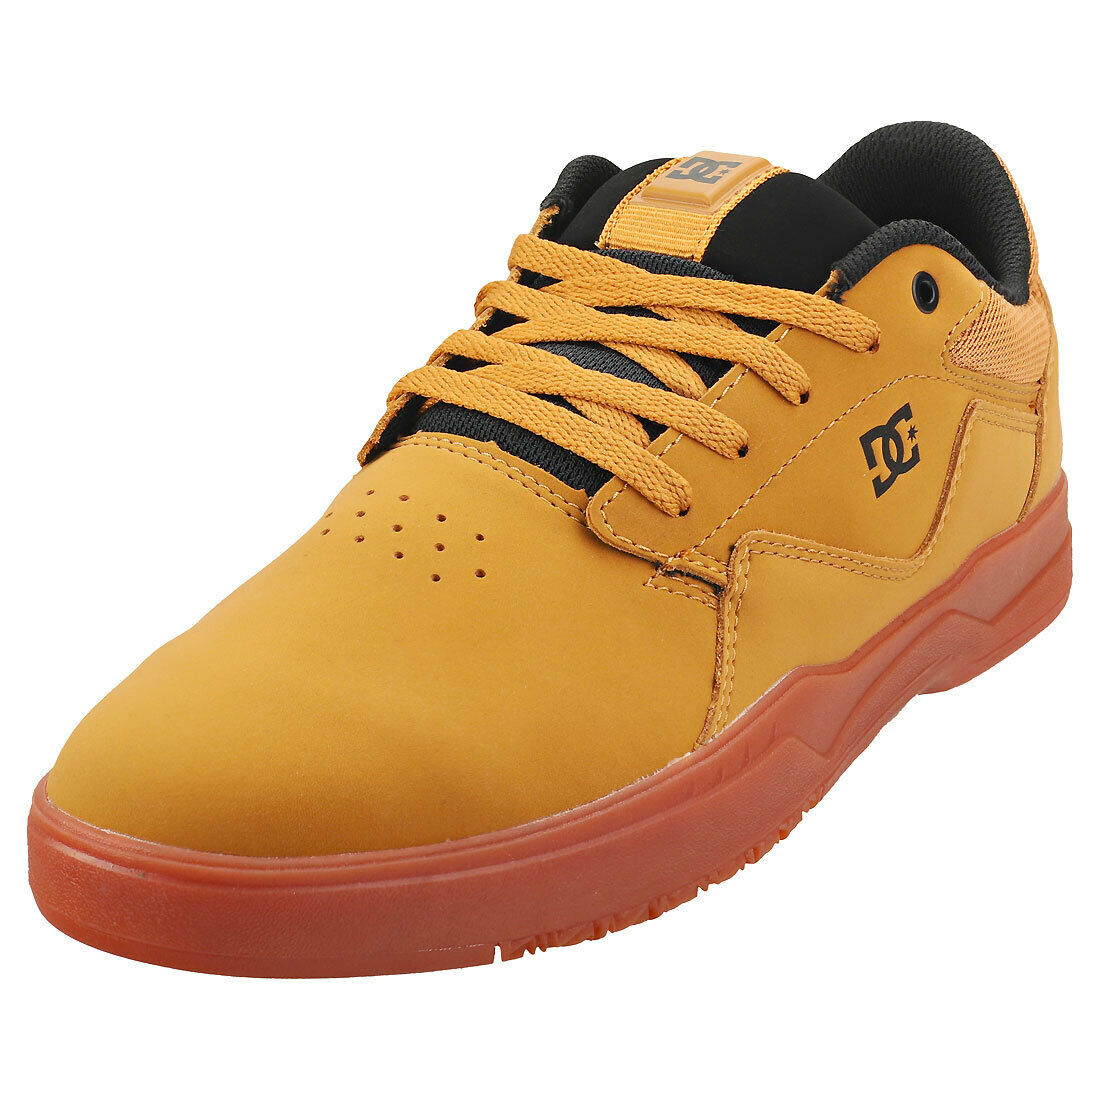 DC Shoes Barksdale Mens Wheat Skate Trainers - 9 UK